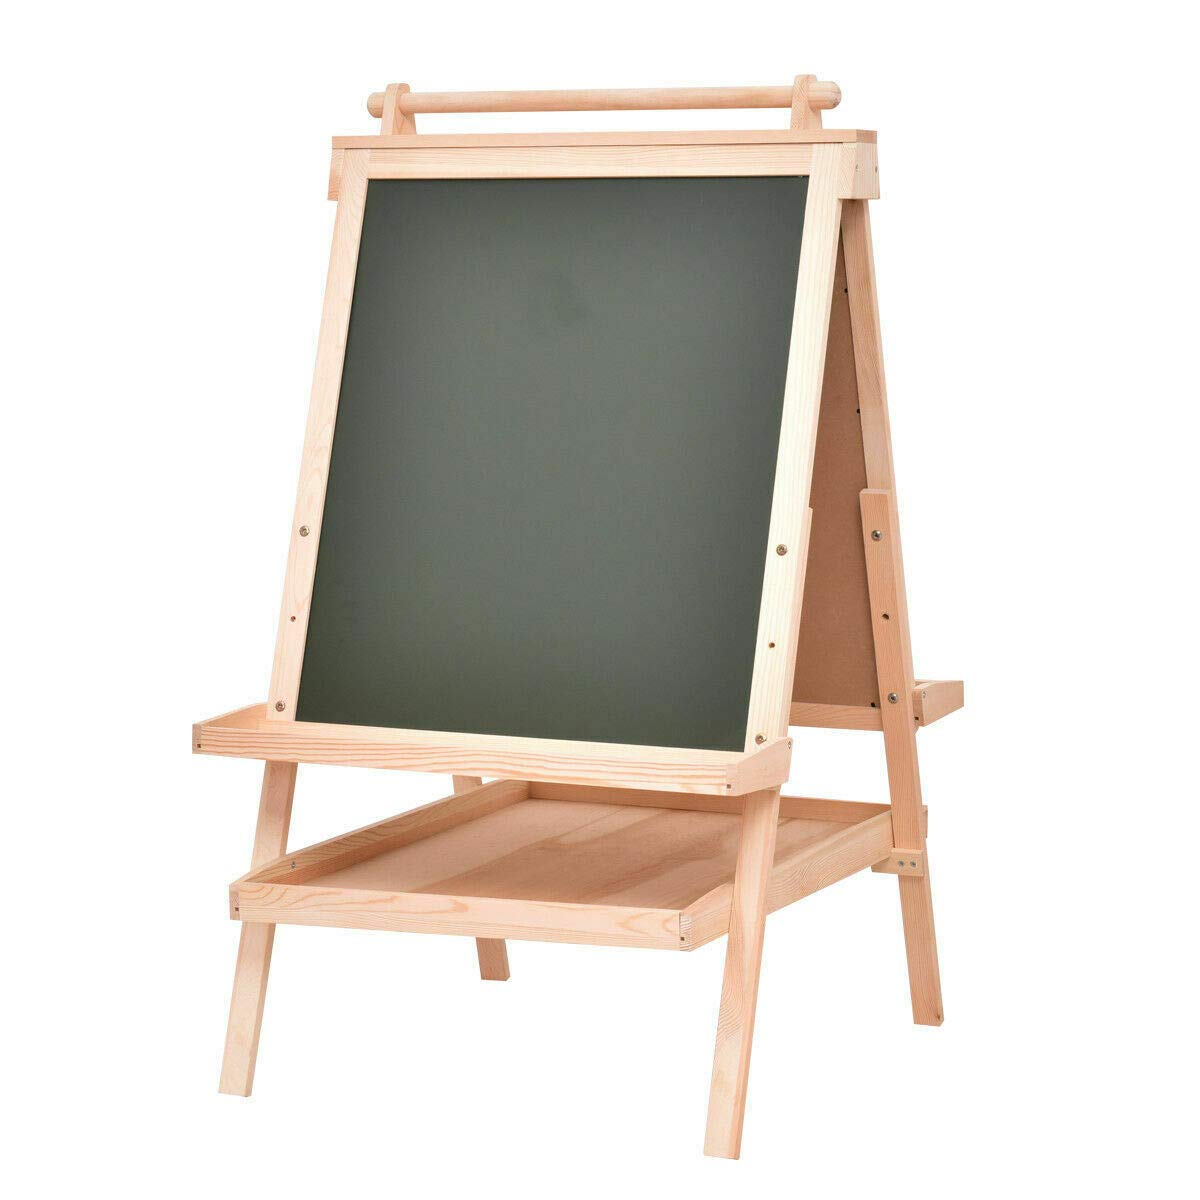 Wooden Art Easel All in One Kid's Double Side w/Paper Roll&Accessories Tray